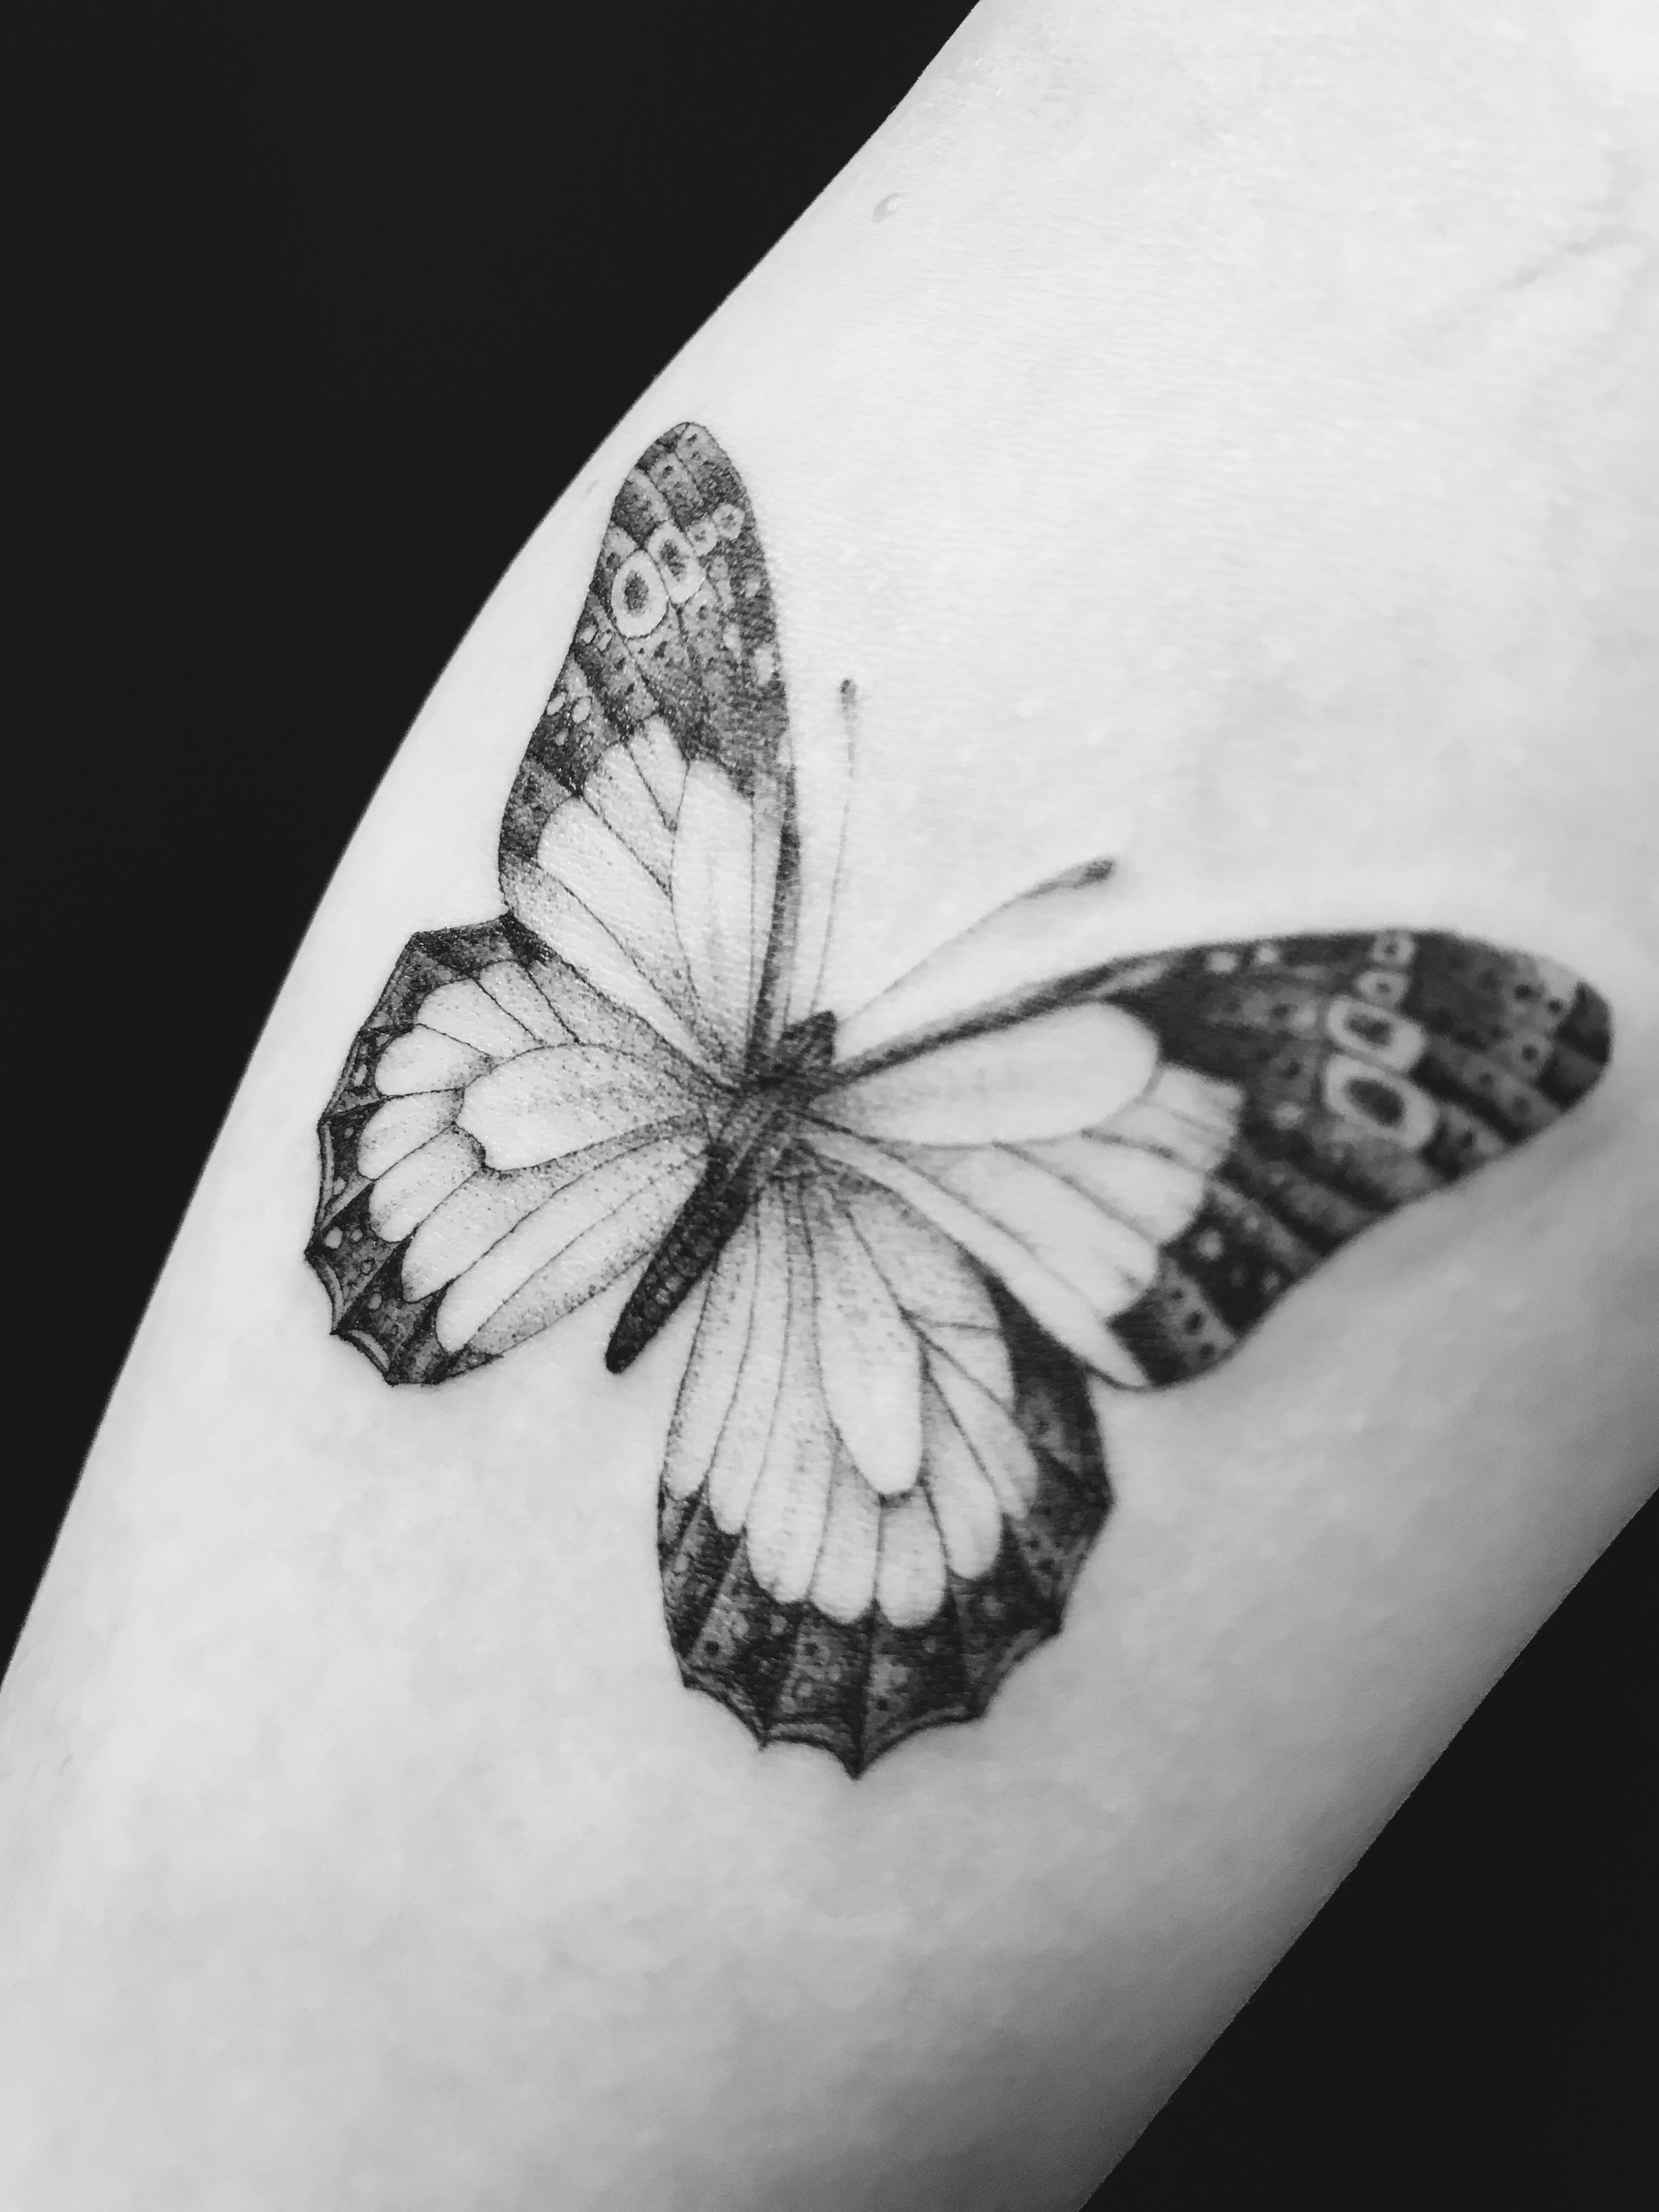 Black And White Butterfly Tattoo : black, white, butterfly, tattoo, Butterfly, Tattoo, Tattoos, Women,, White, Tattoo,, Black